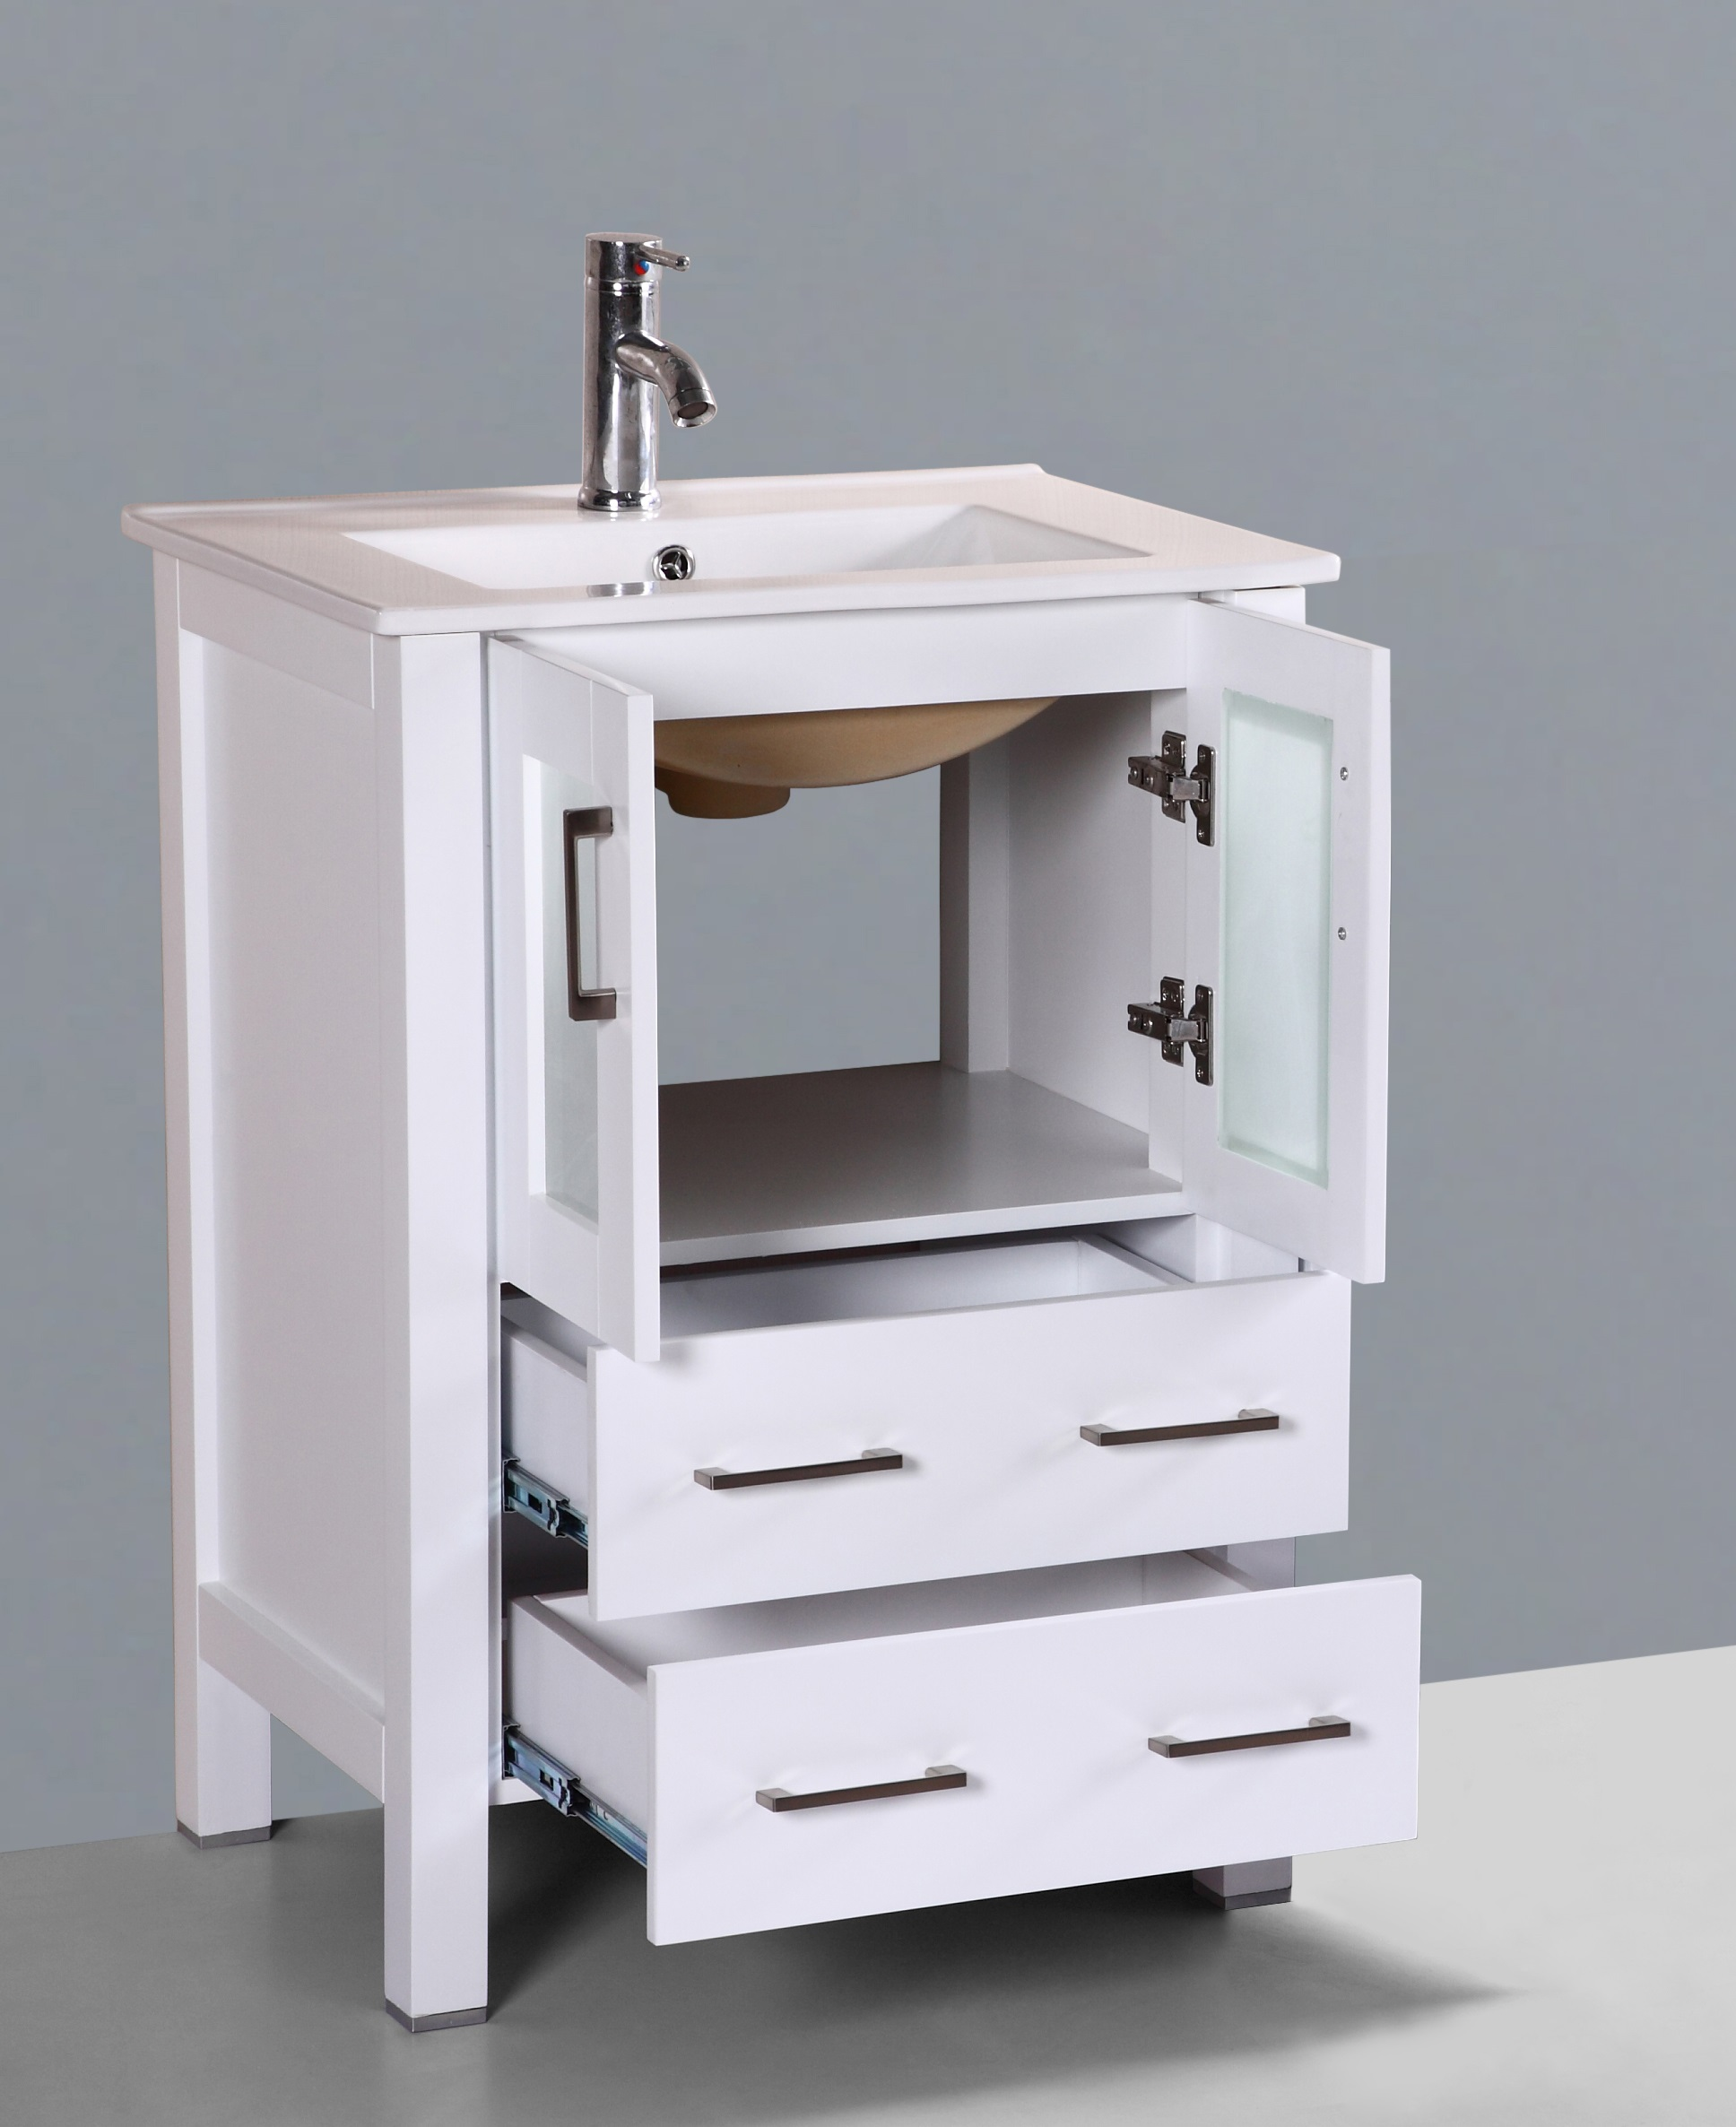 daisy 24 inch white vanity ak trading home options. Black Bedroom Furniture Sets. Home Design Ideas